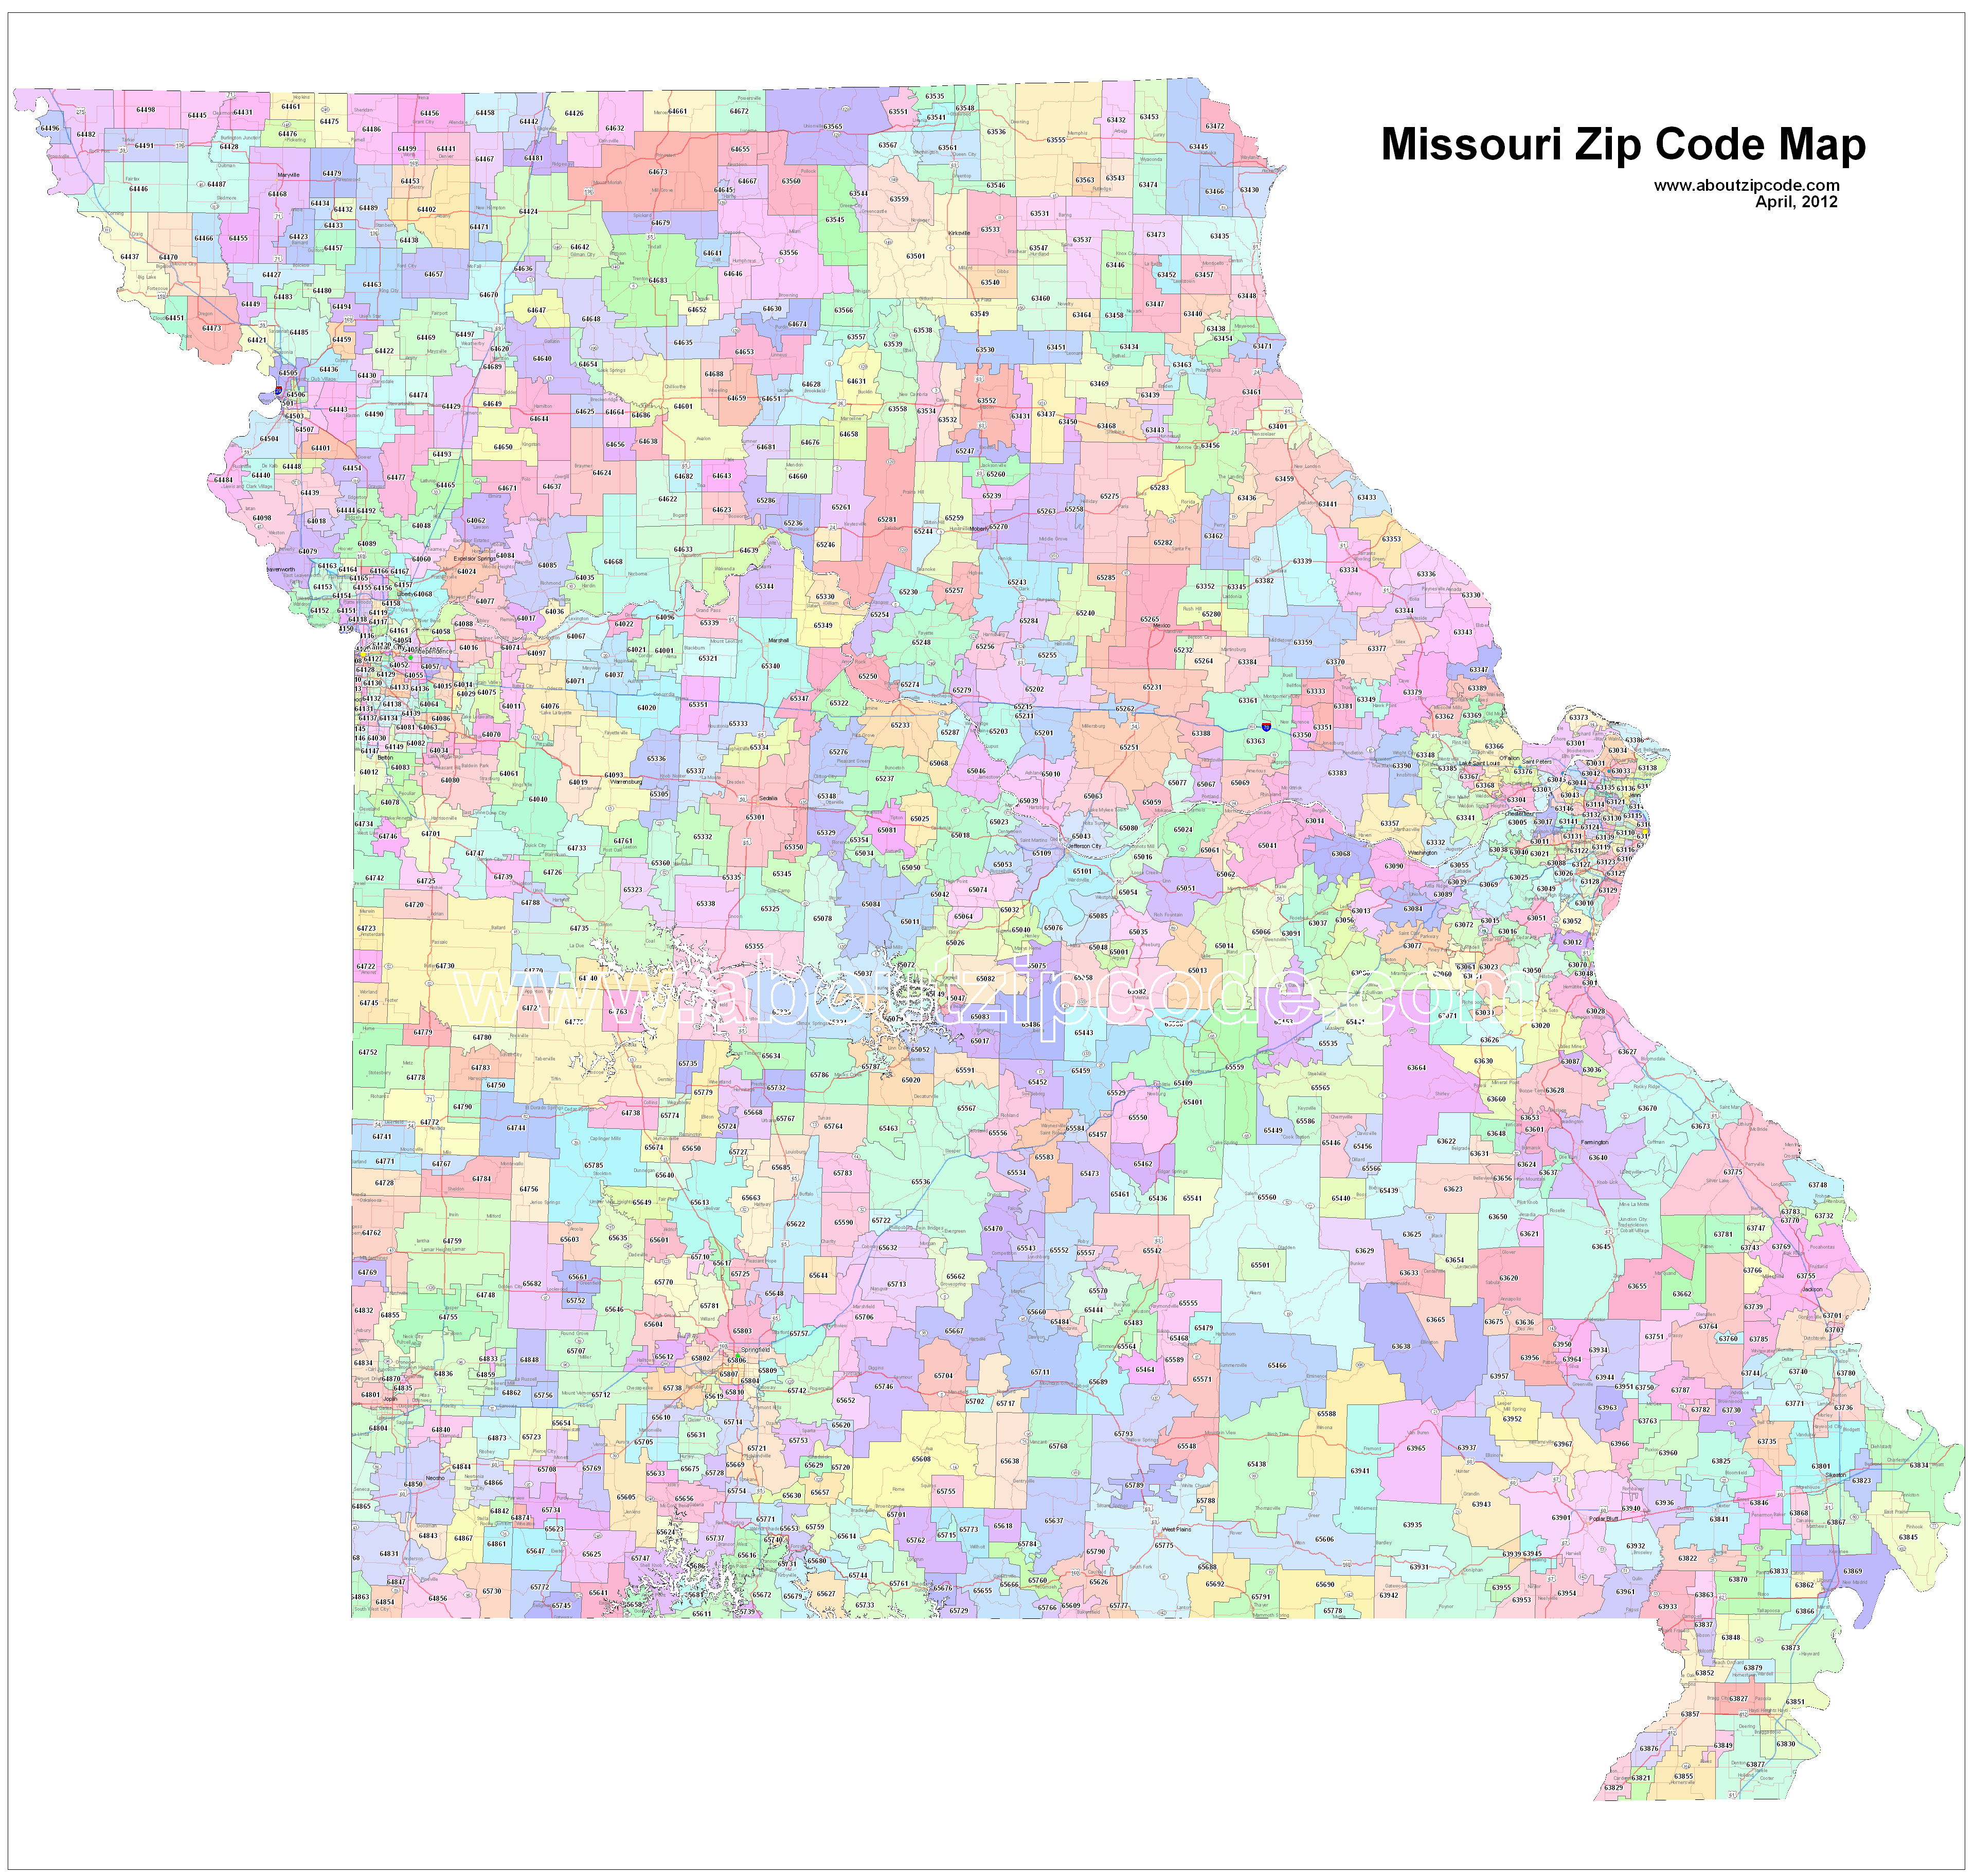 Missouri (MO) Zip Code Map